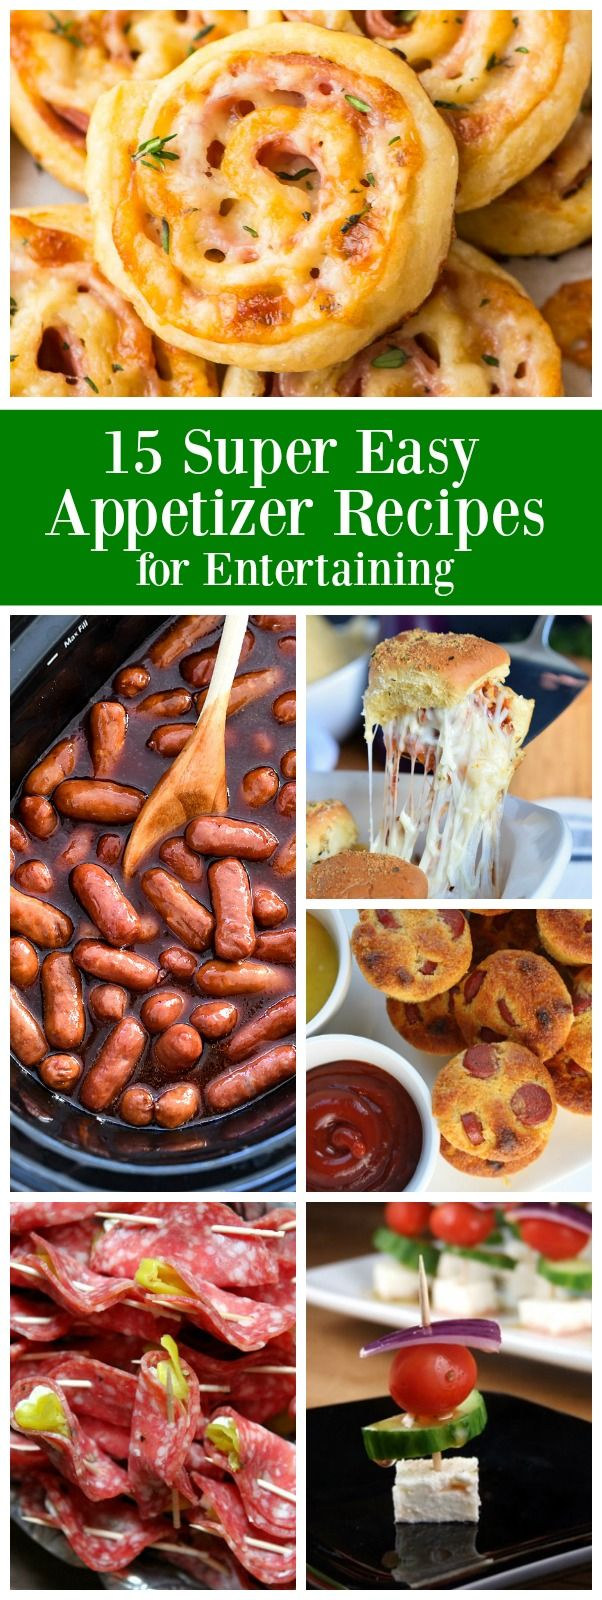 15 Super Easy Appetizer Recipes for Entertaining: including Grape Jelly Meatballs, Easy Dip Recipes, Little Smokies, Pinwheels and more!  Perfect recipes for a New Year's Eve Party or Super Bowl Party.